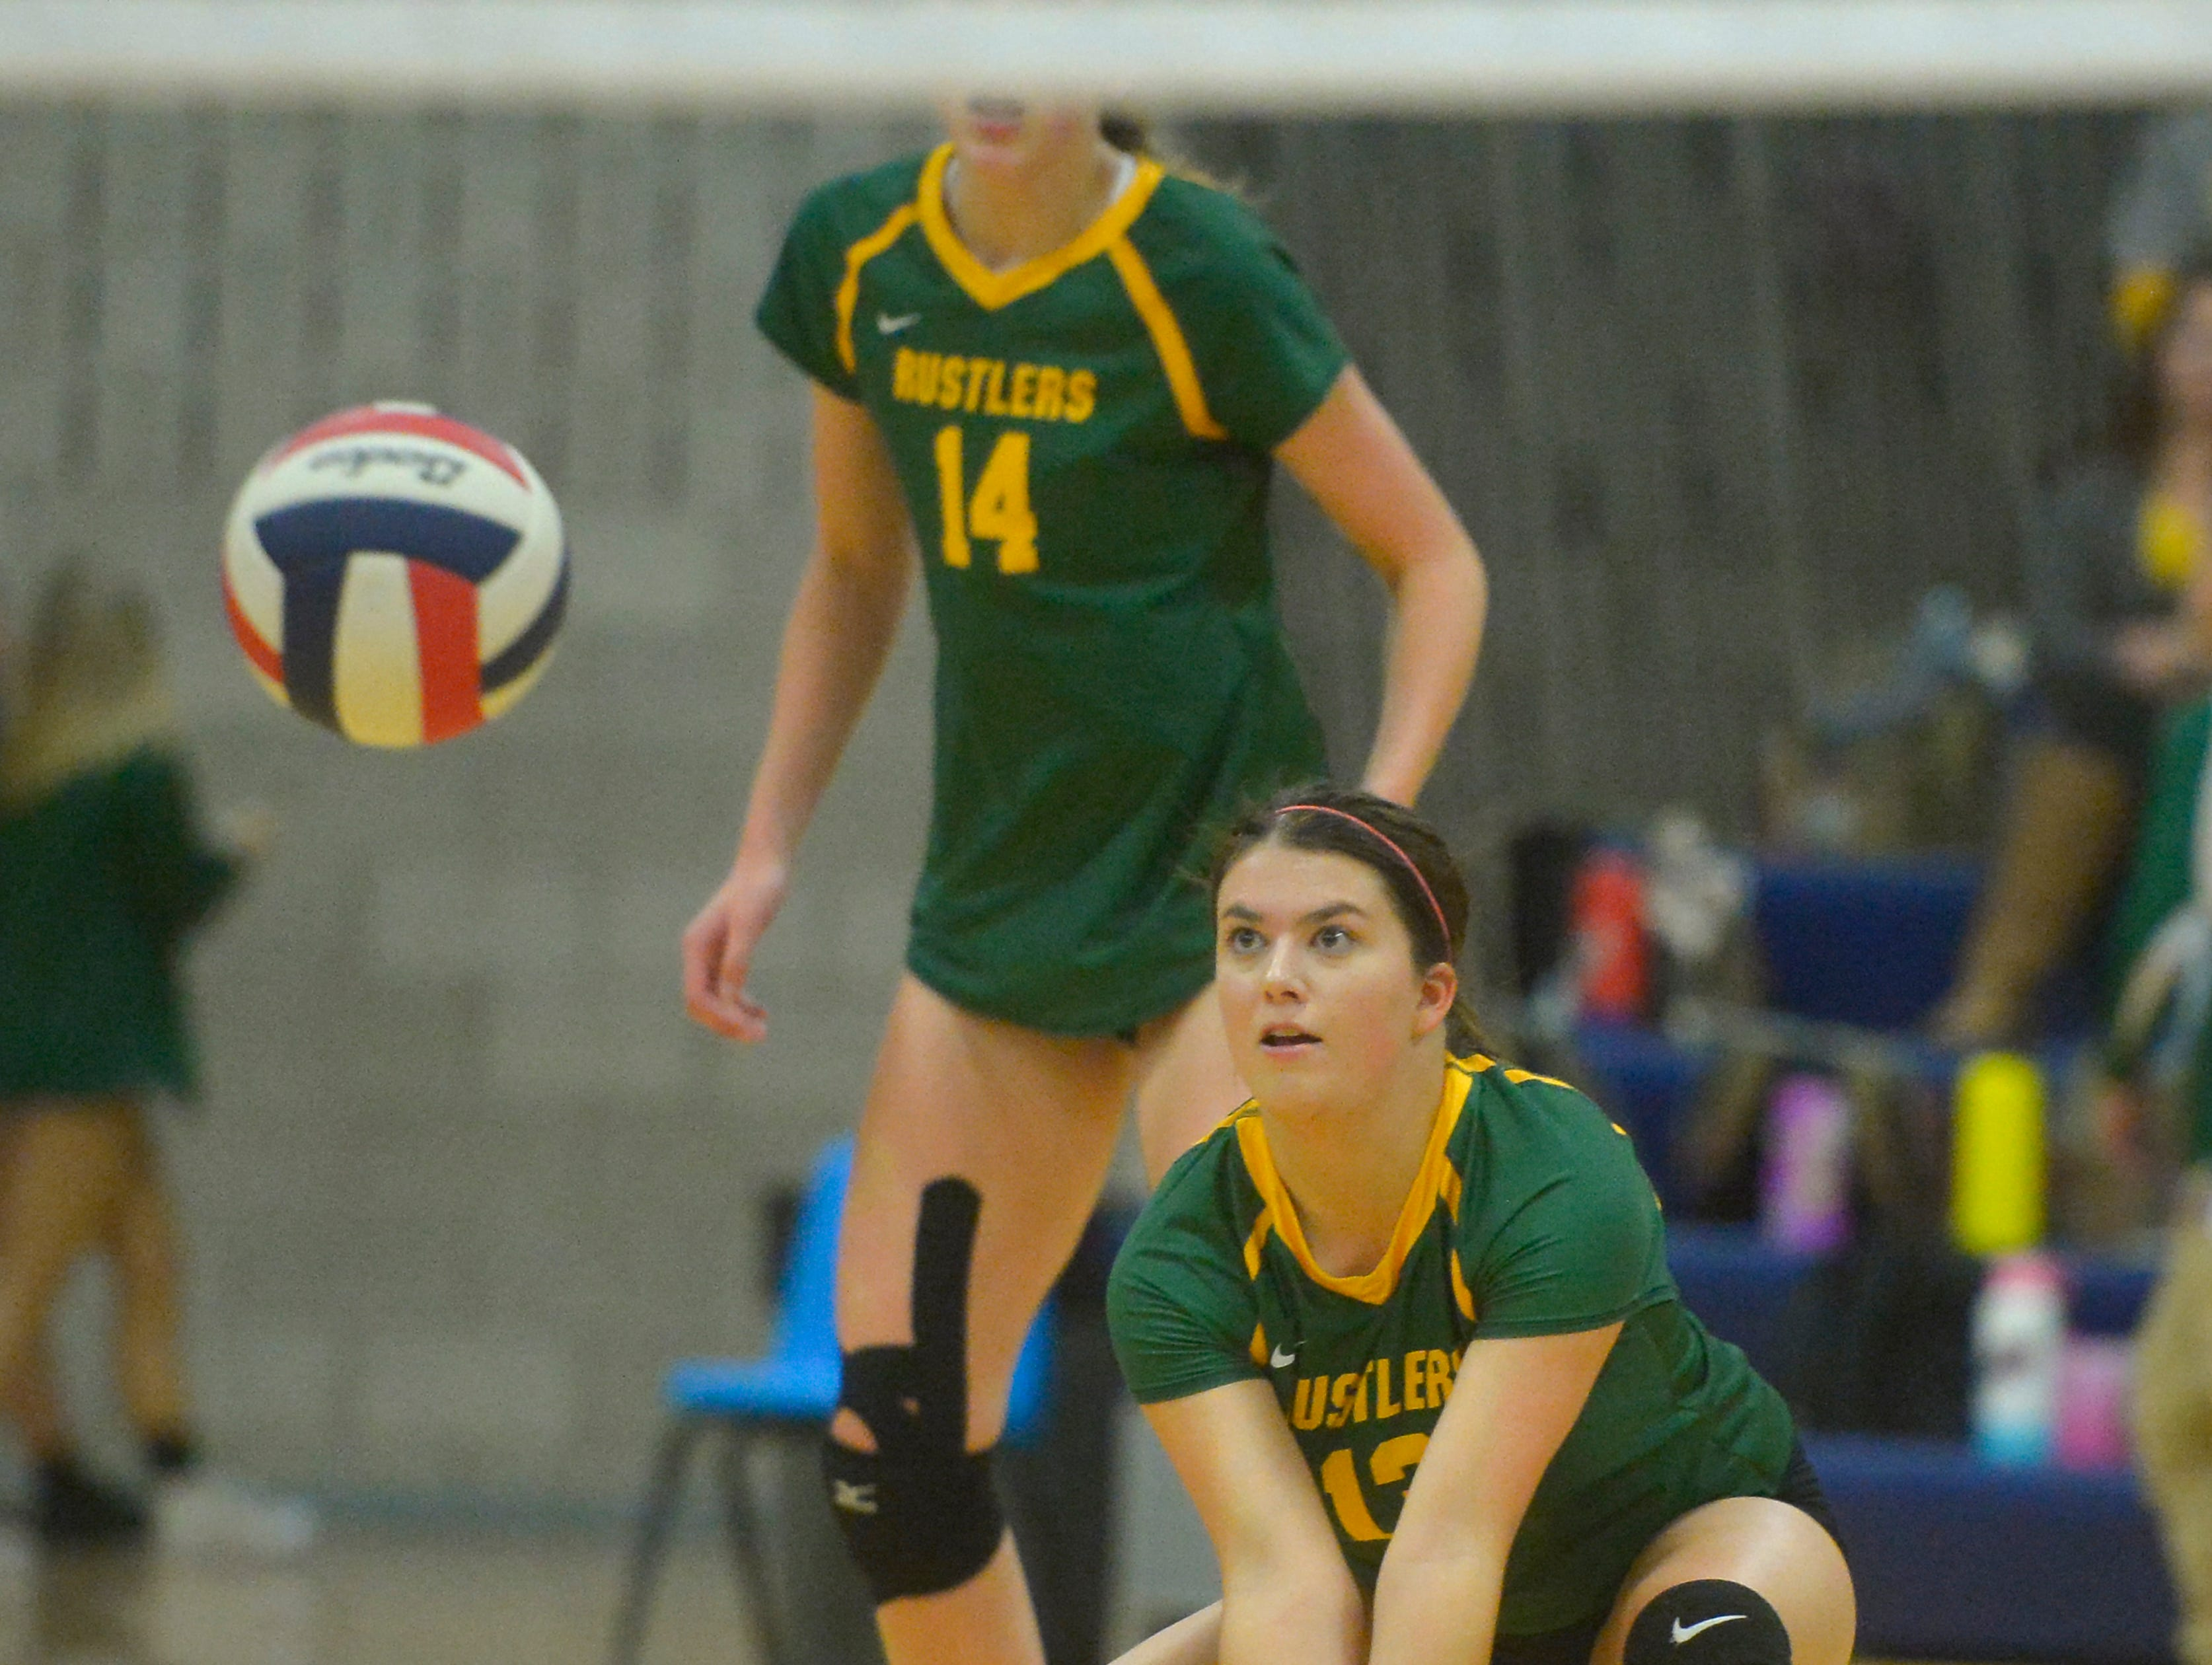 CMR's Ally Dube makes a dig during the crosstown volleyball match in the Swarthout Fieldhouse, Tuesday.